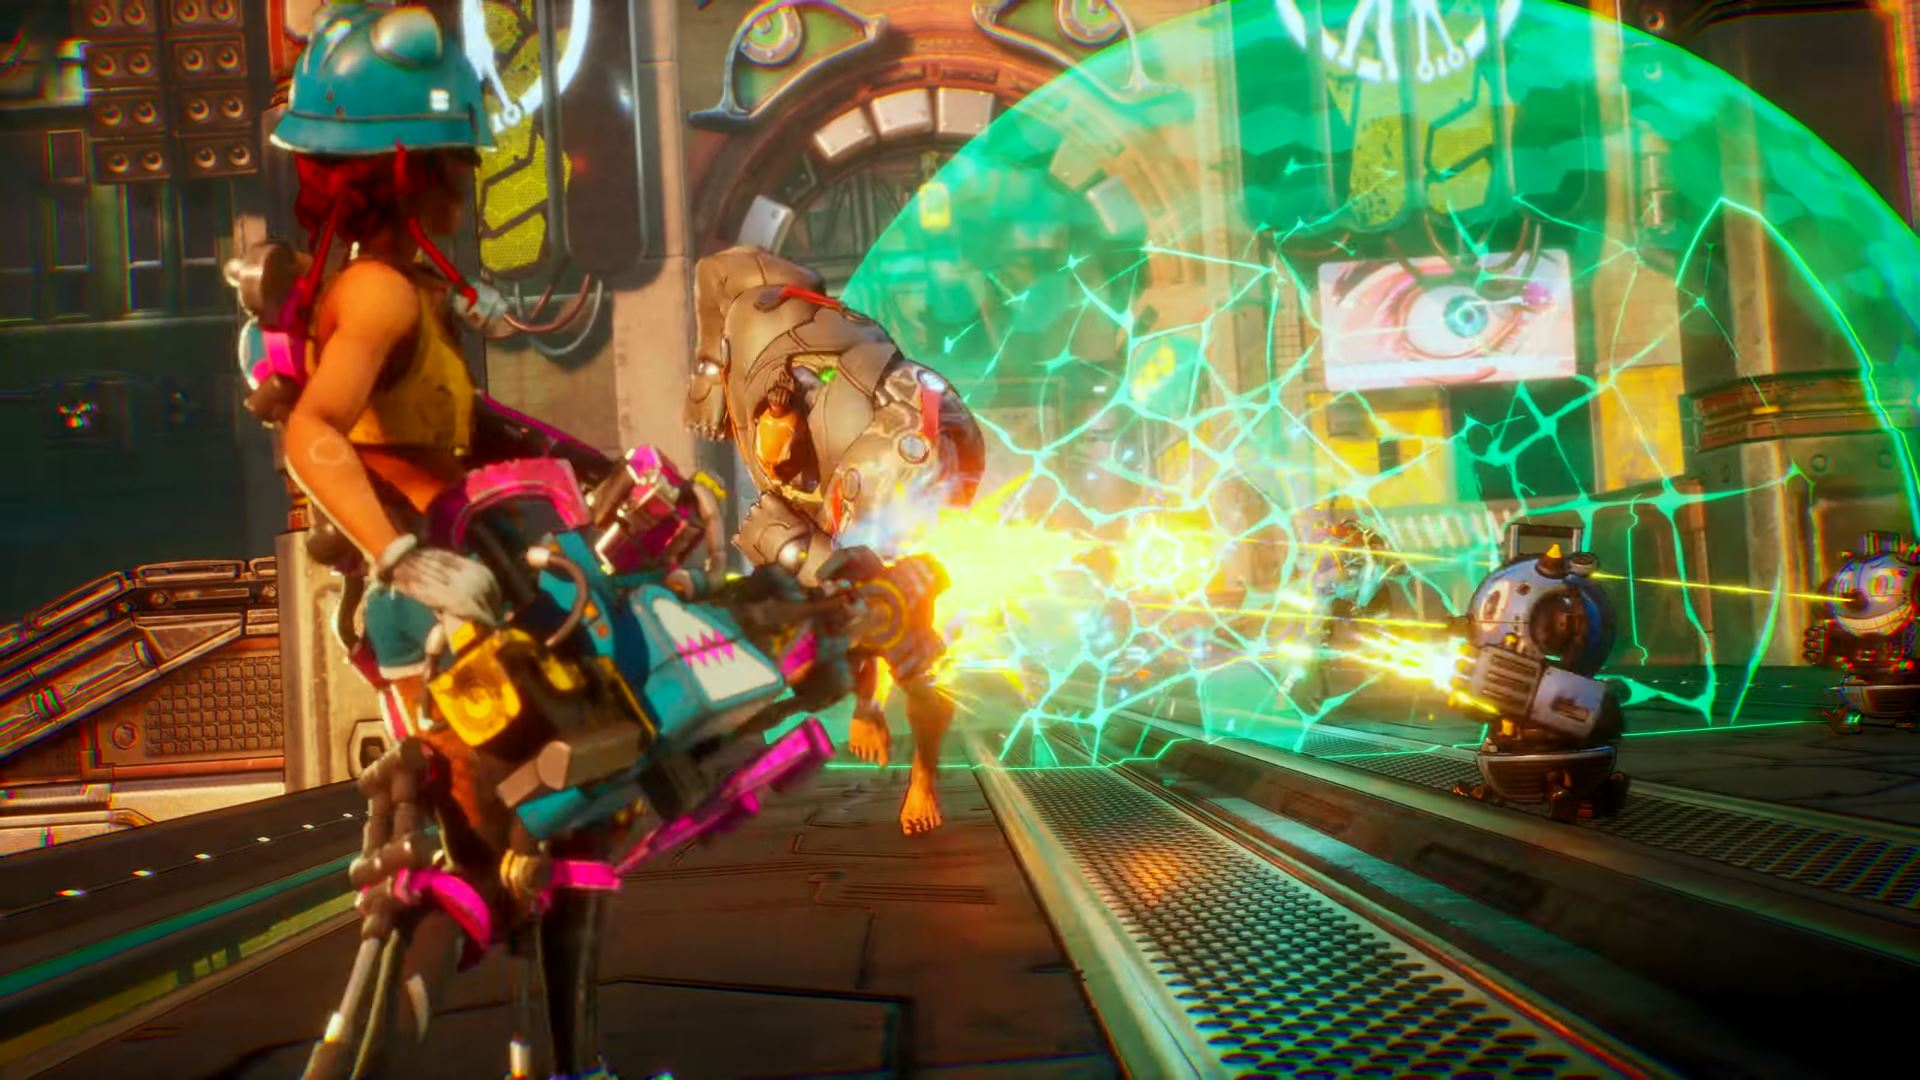 Bleeding Edge: Release Date, Gameplay, Trailer, and News | Den of Geek